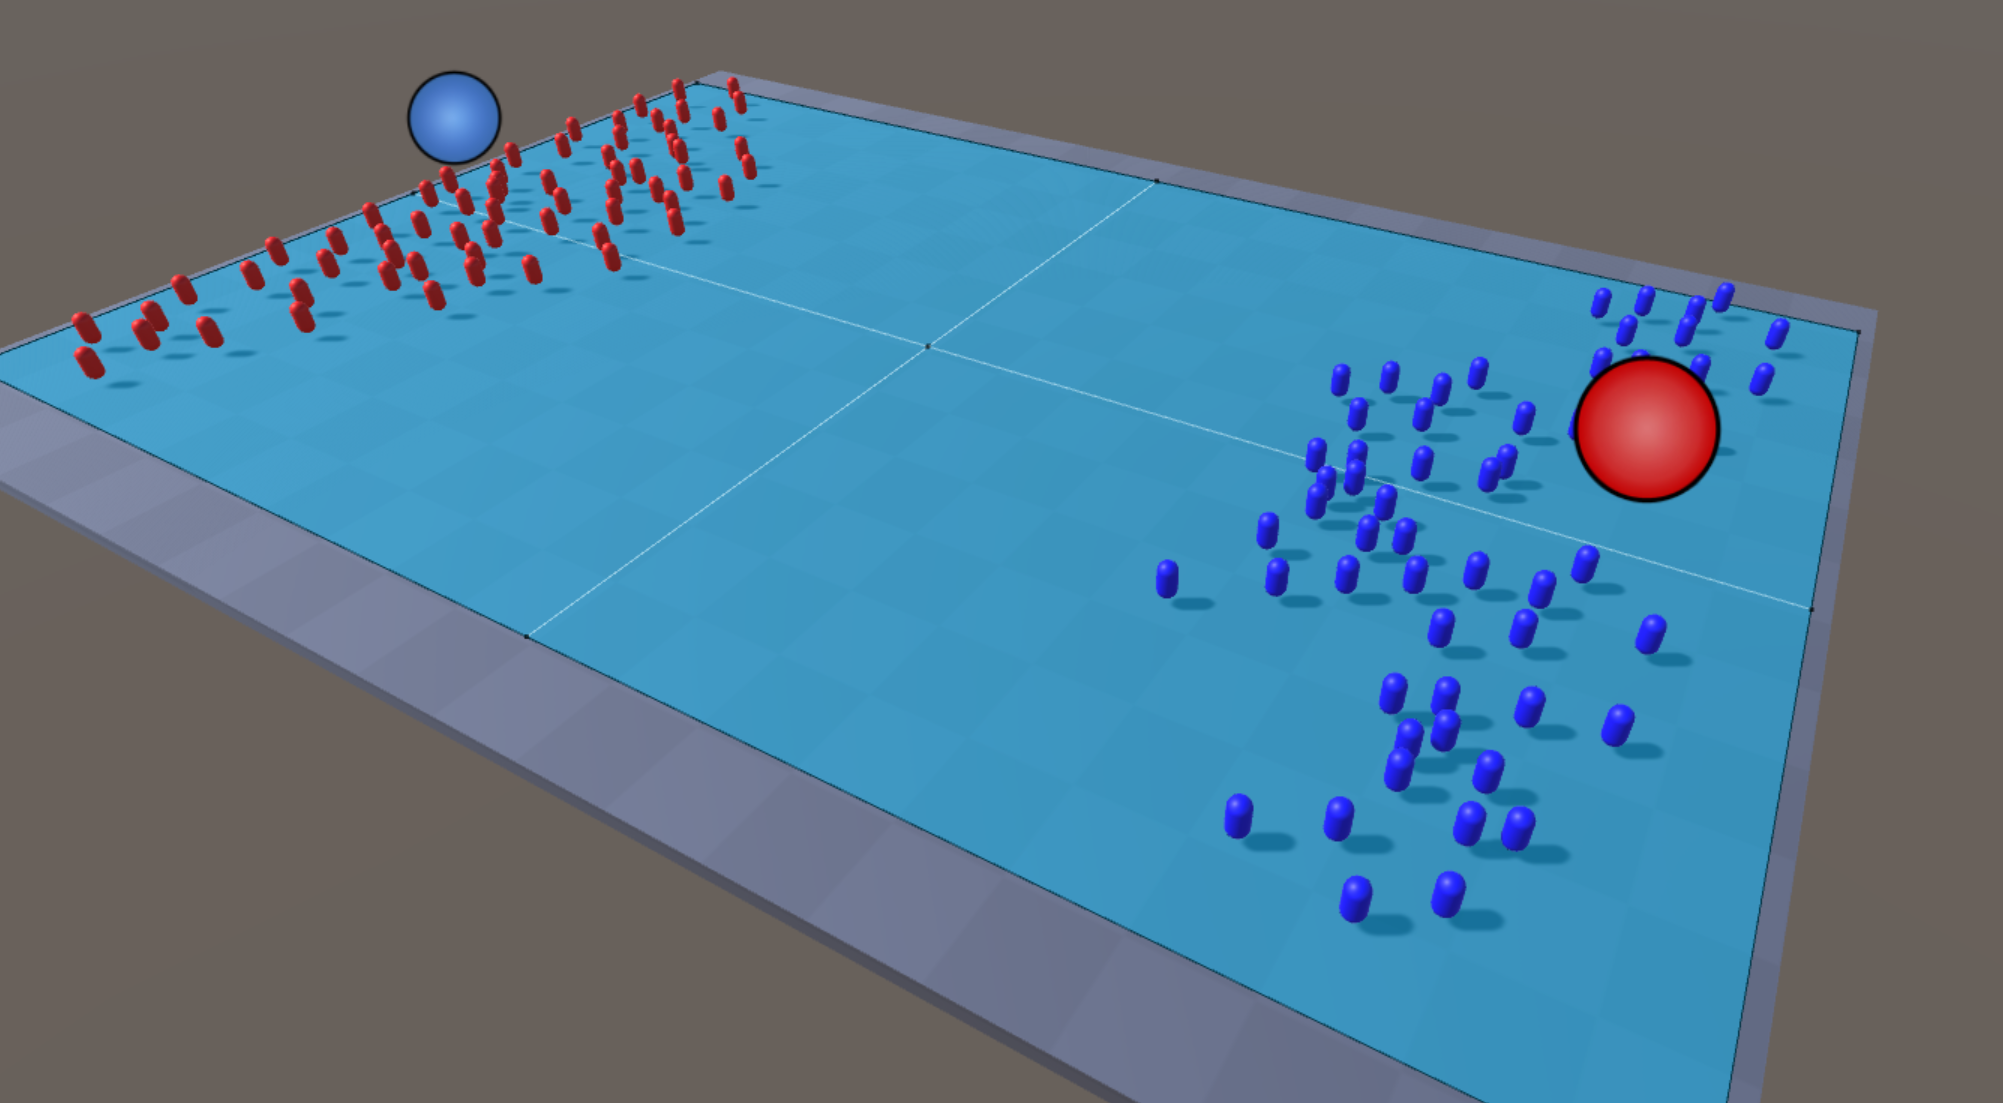 Implementing a simple crowd simulation - Unity 2017 Game AI